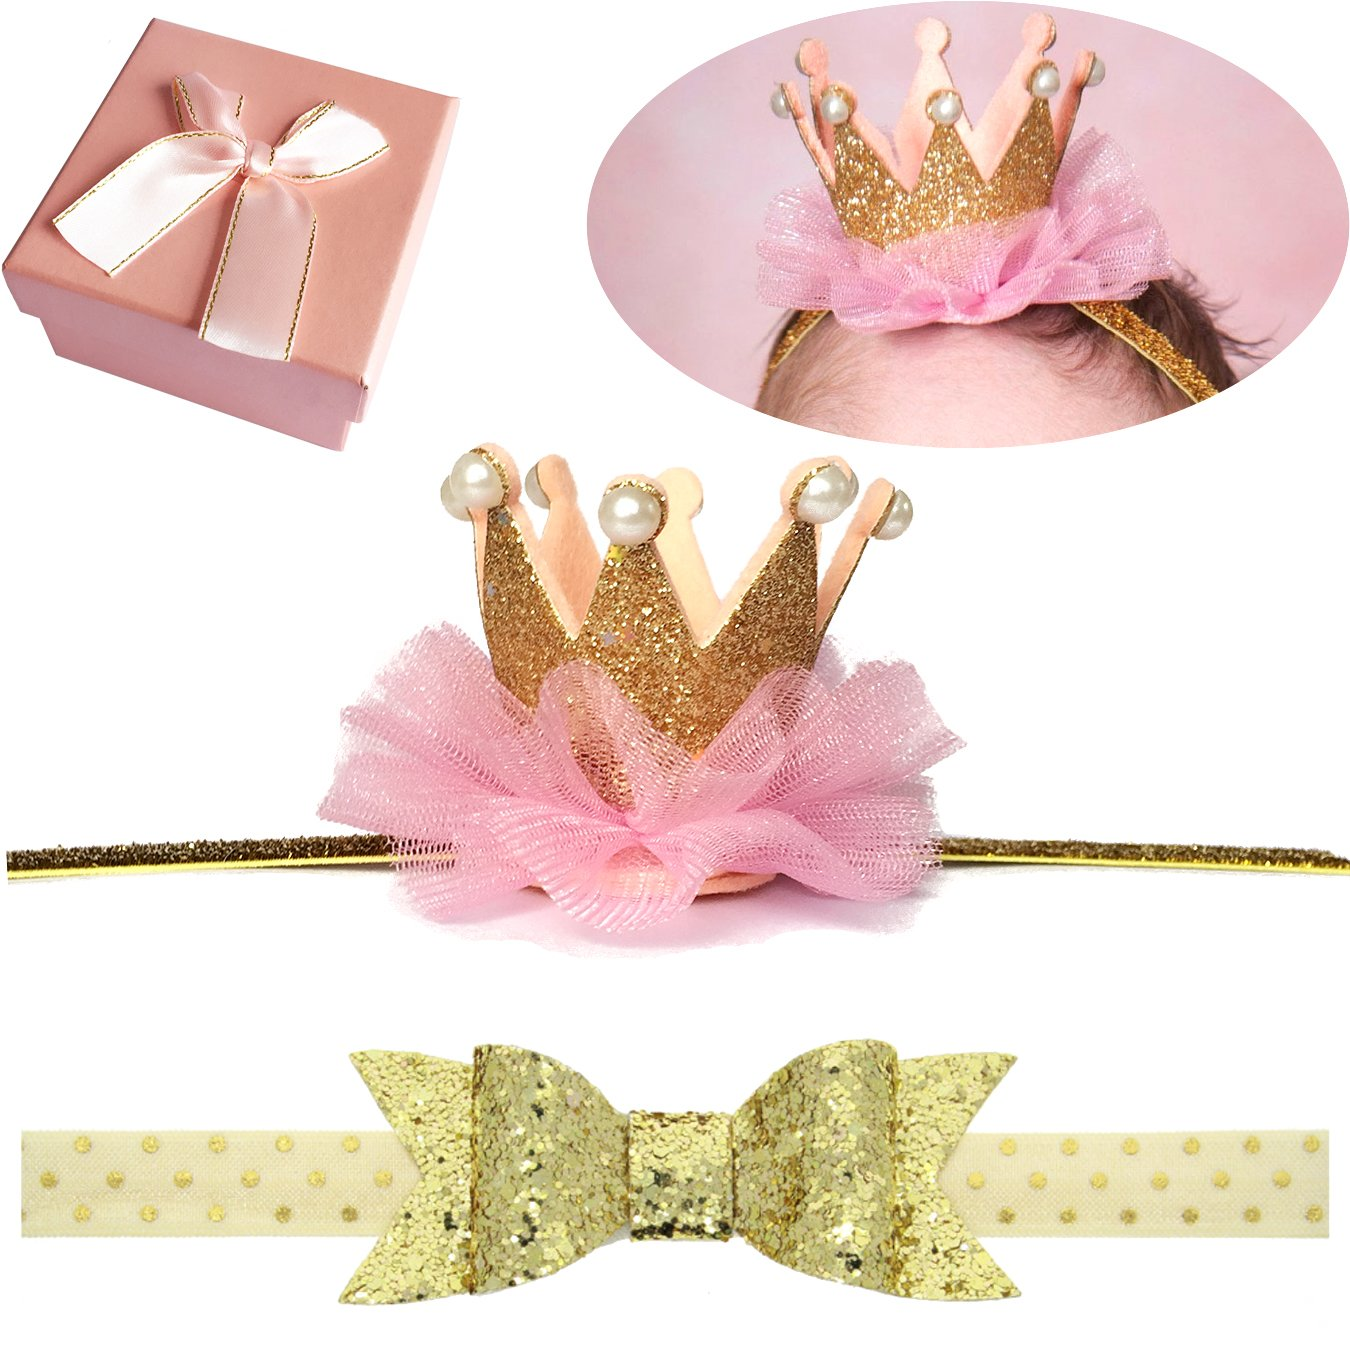 Elesa Miracle Baby Hair Accessories Baby Girl's Gift Box with Shiny Bow Crown Headband